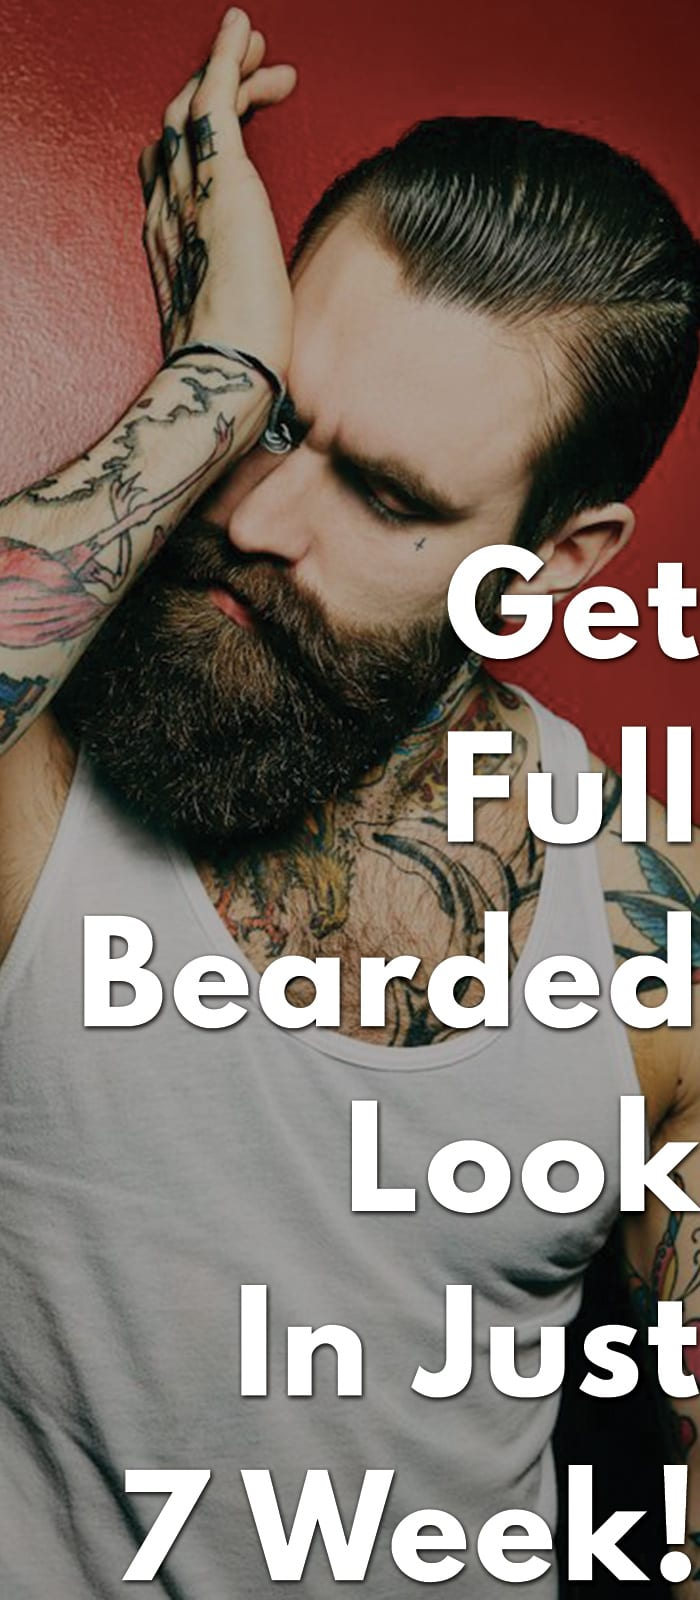 Get-Full-Bearded-Look-In-Just-7-Week!.